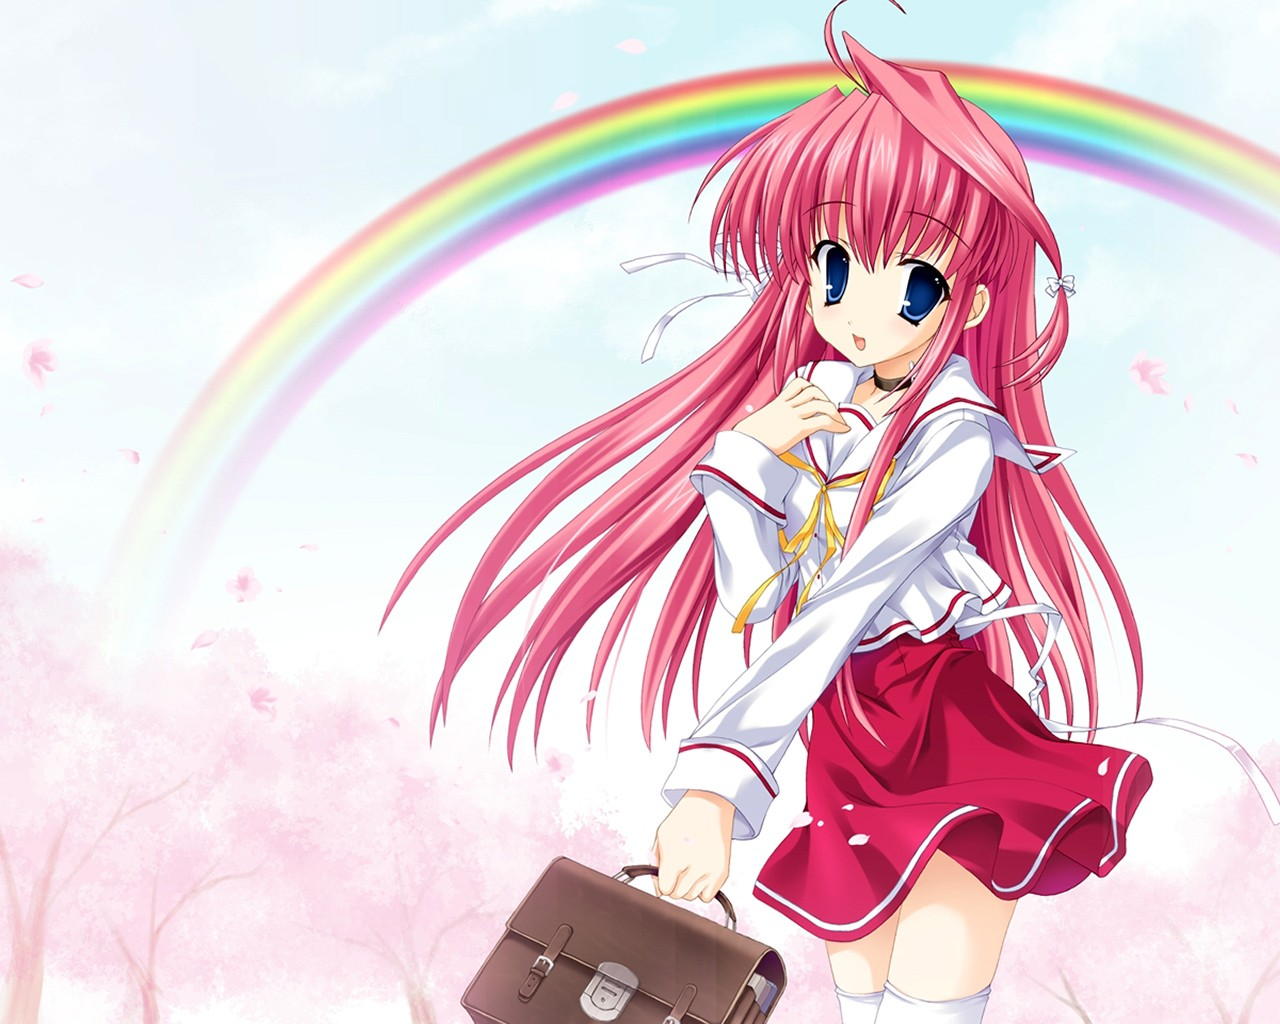 Gift manga wallpaper 15 1280x1024 wallpaper download - Best site to download anime wallpapers ...